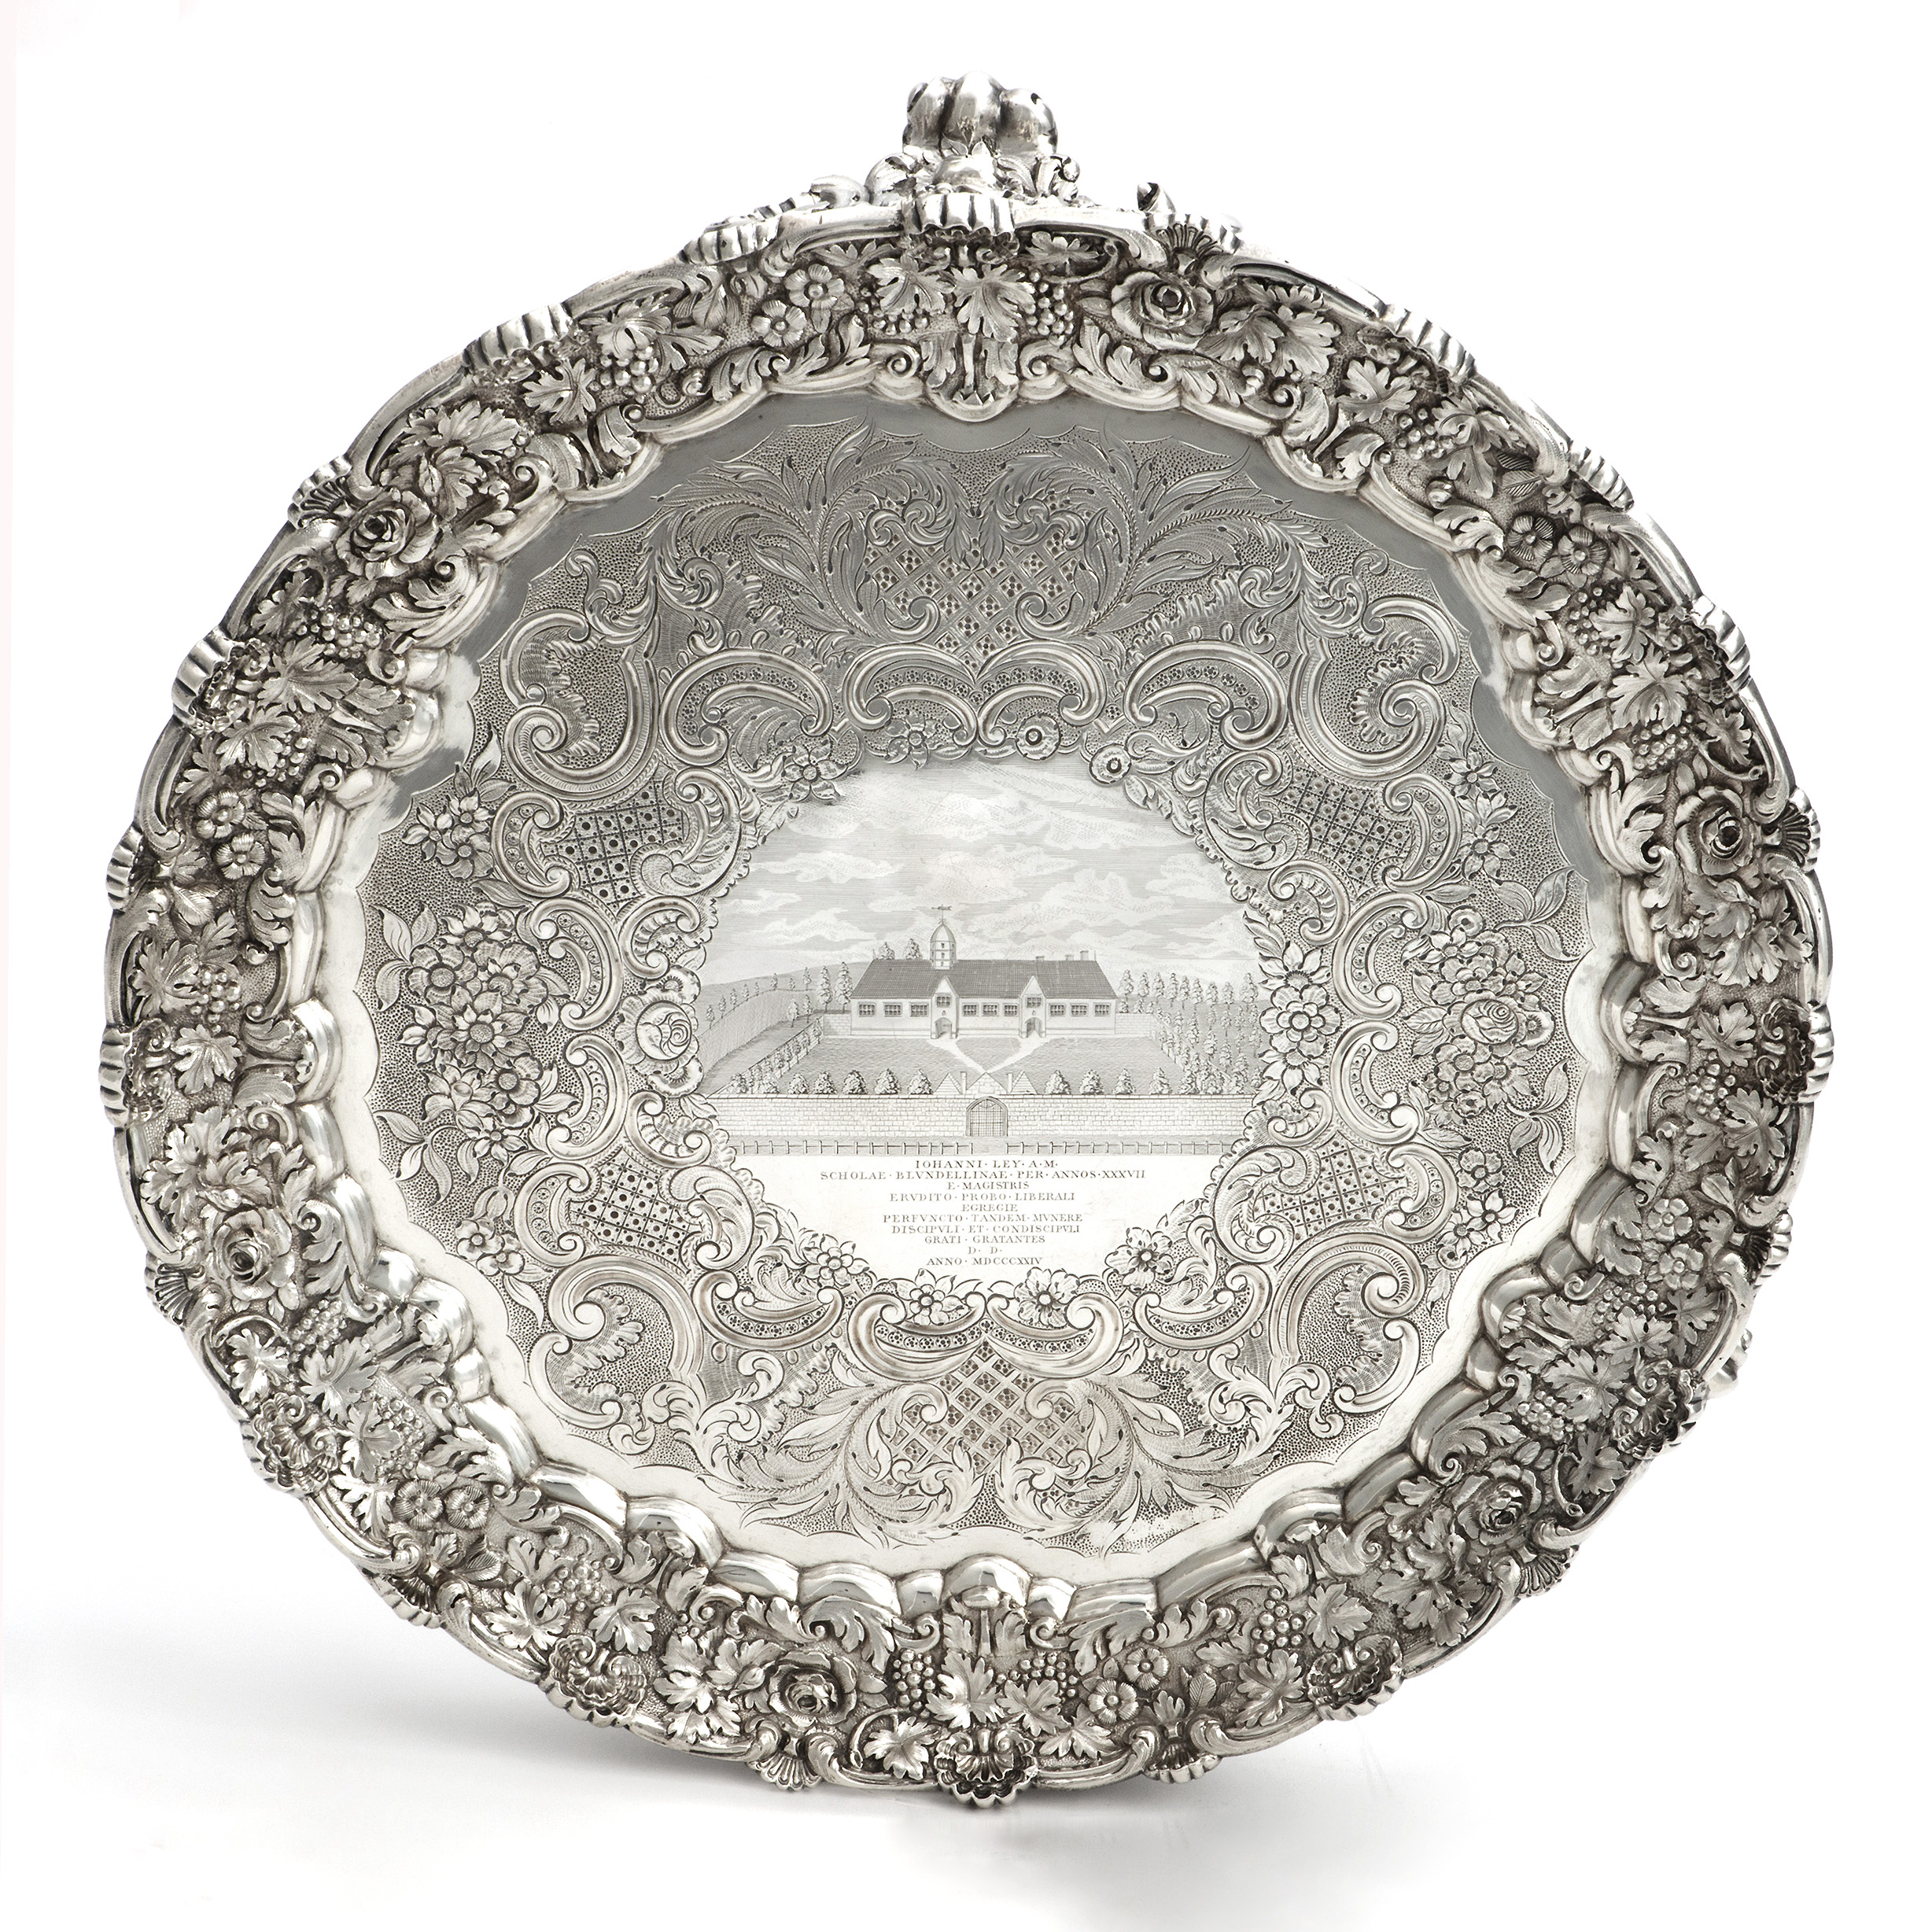 A Fine Blundell's School Salver For A Master.